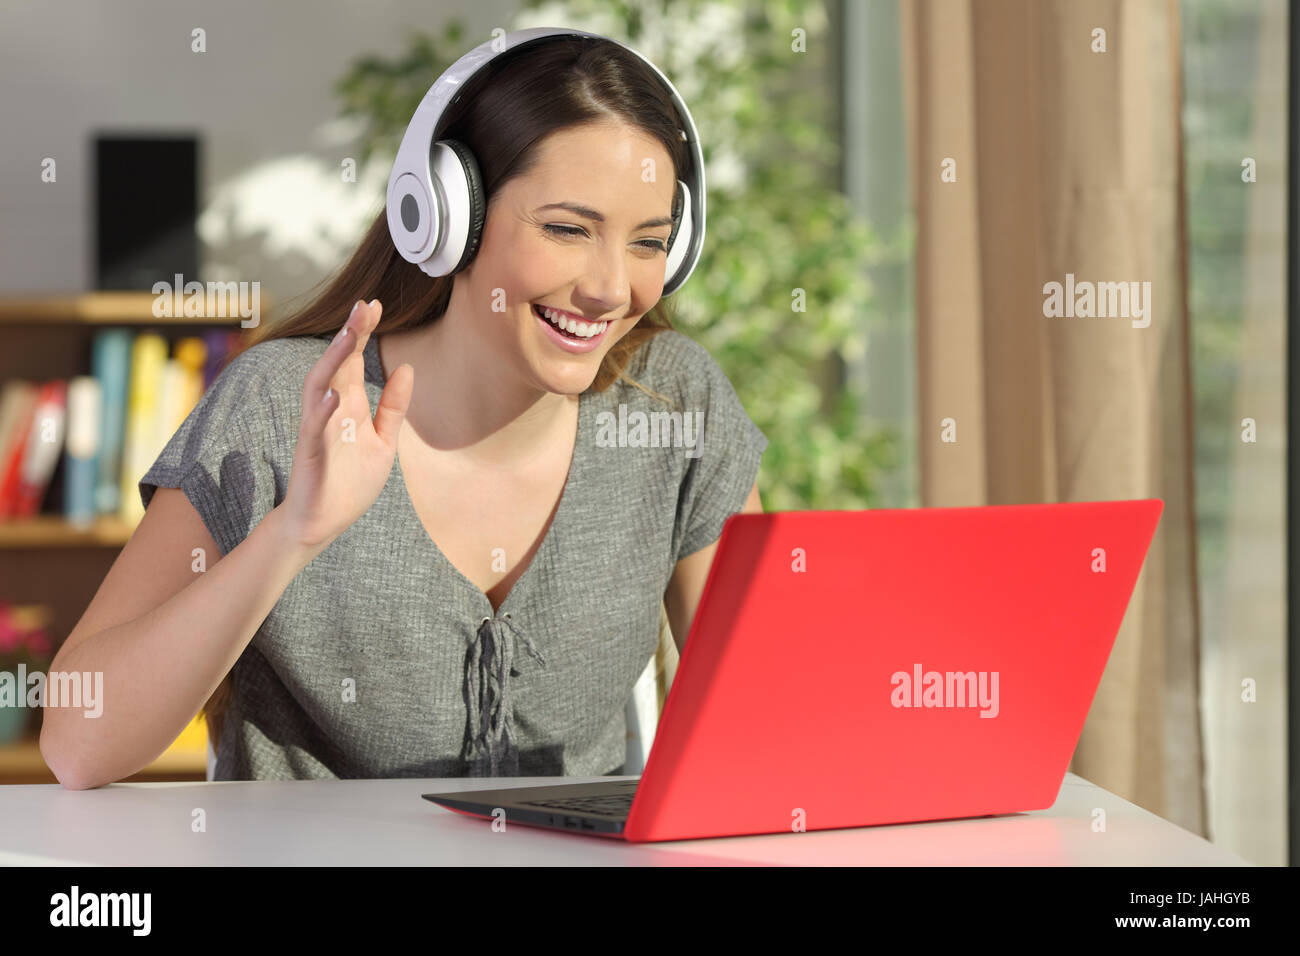 Happy woman wearing headphones greeting during a video conference on happy woman wearing headphones greeting during a video conference on line with a red laptop sitting in a table in the living room m4hsunfo